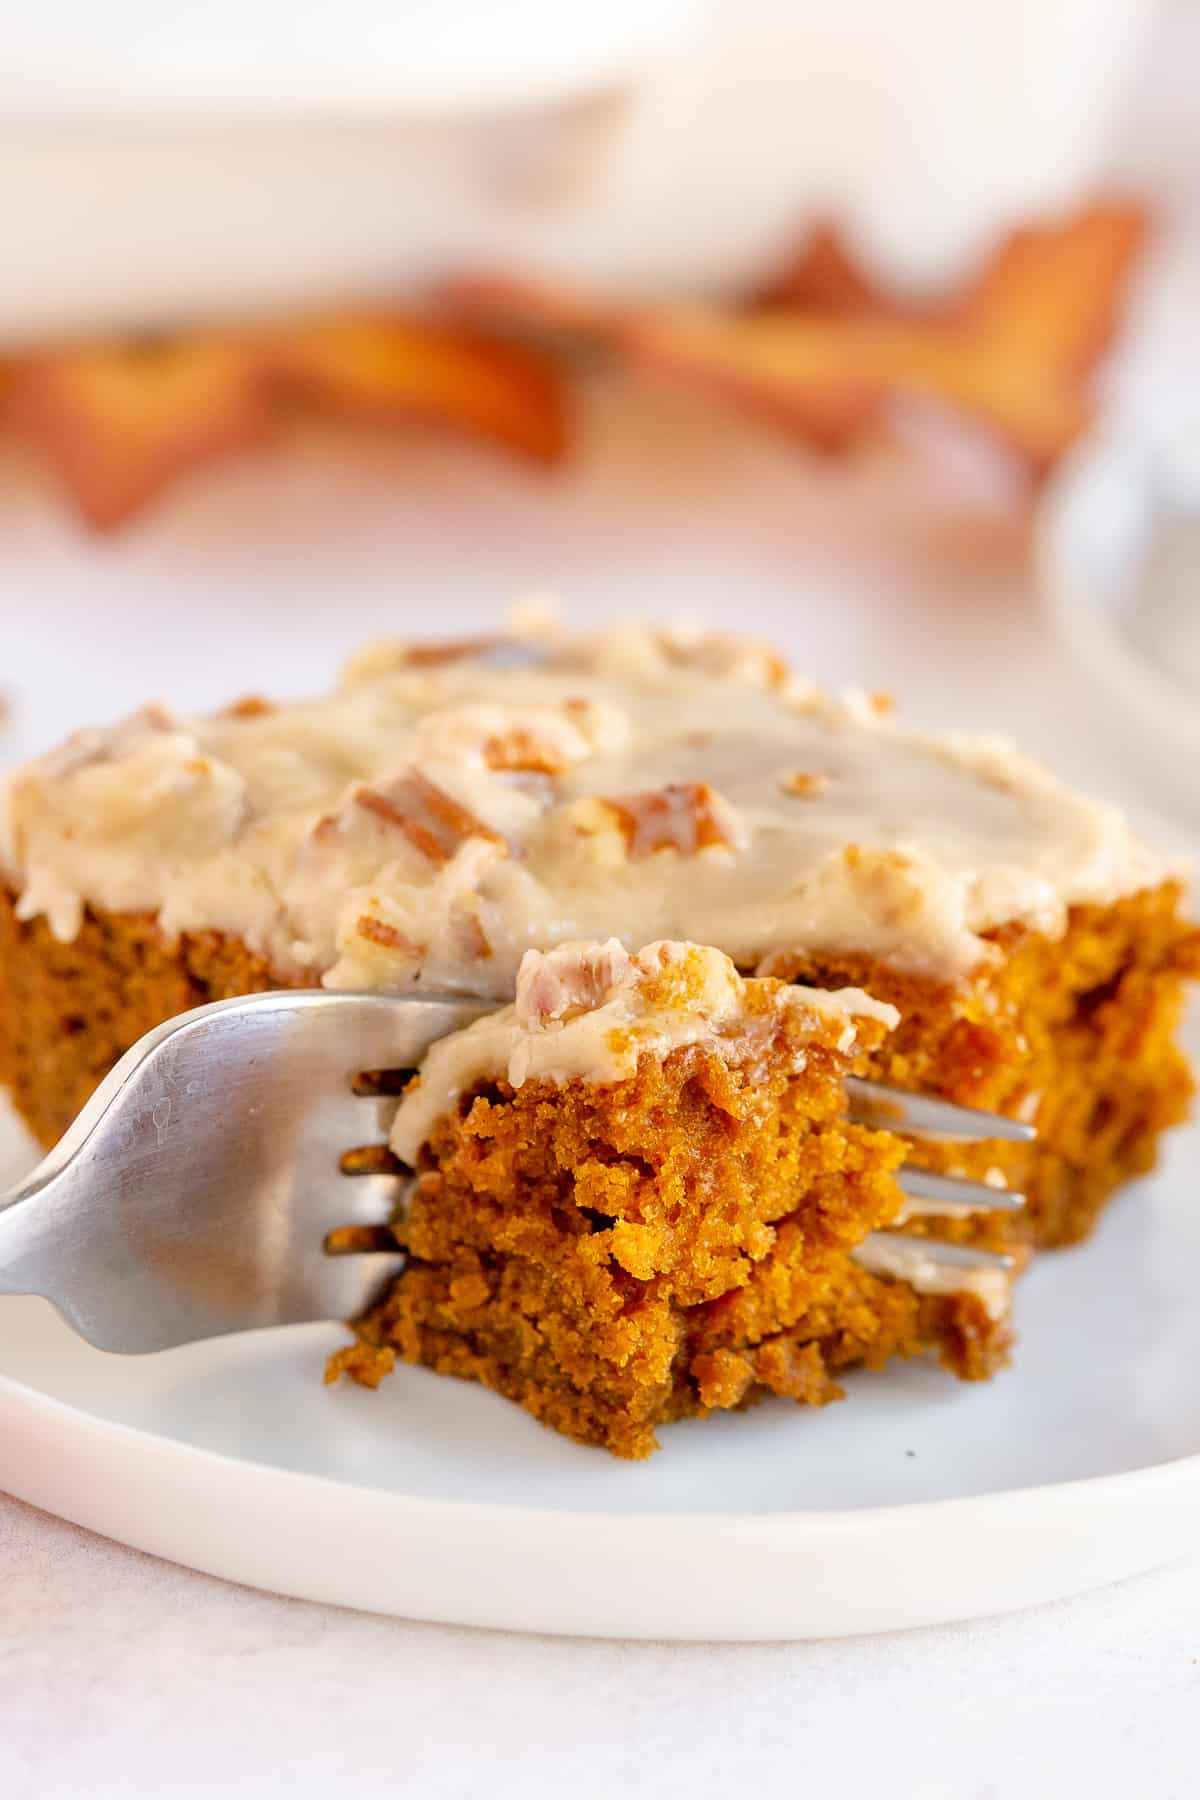 A fork breaks into a slice of pumpkin gingerbread on a plate.